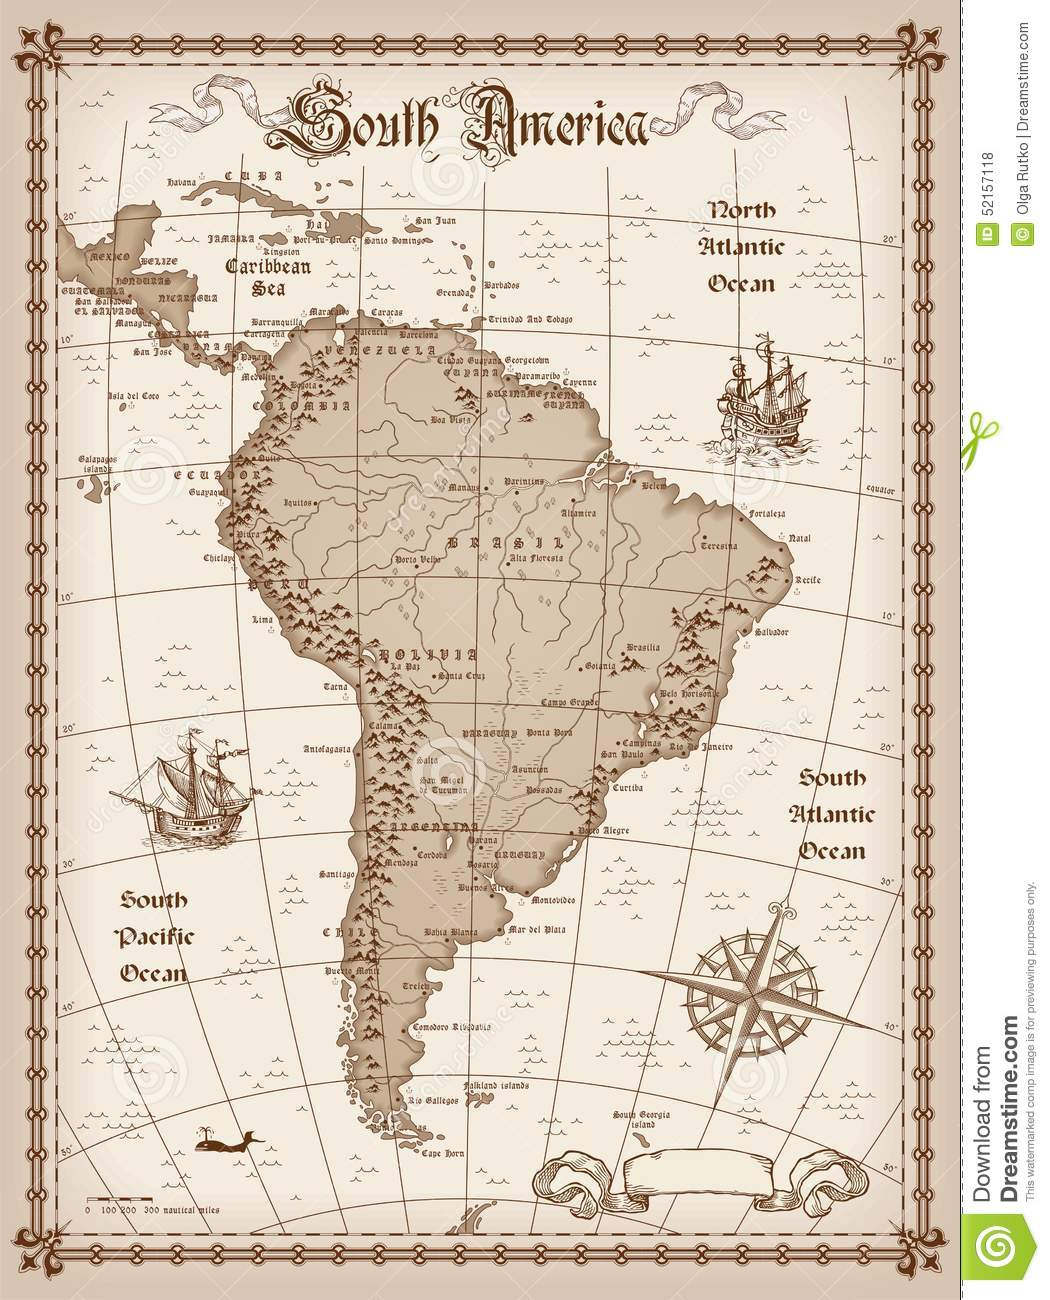 Vintage South America Map stock vector. Image of color - 52157118